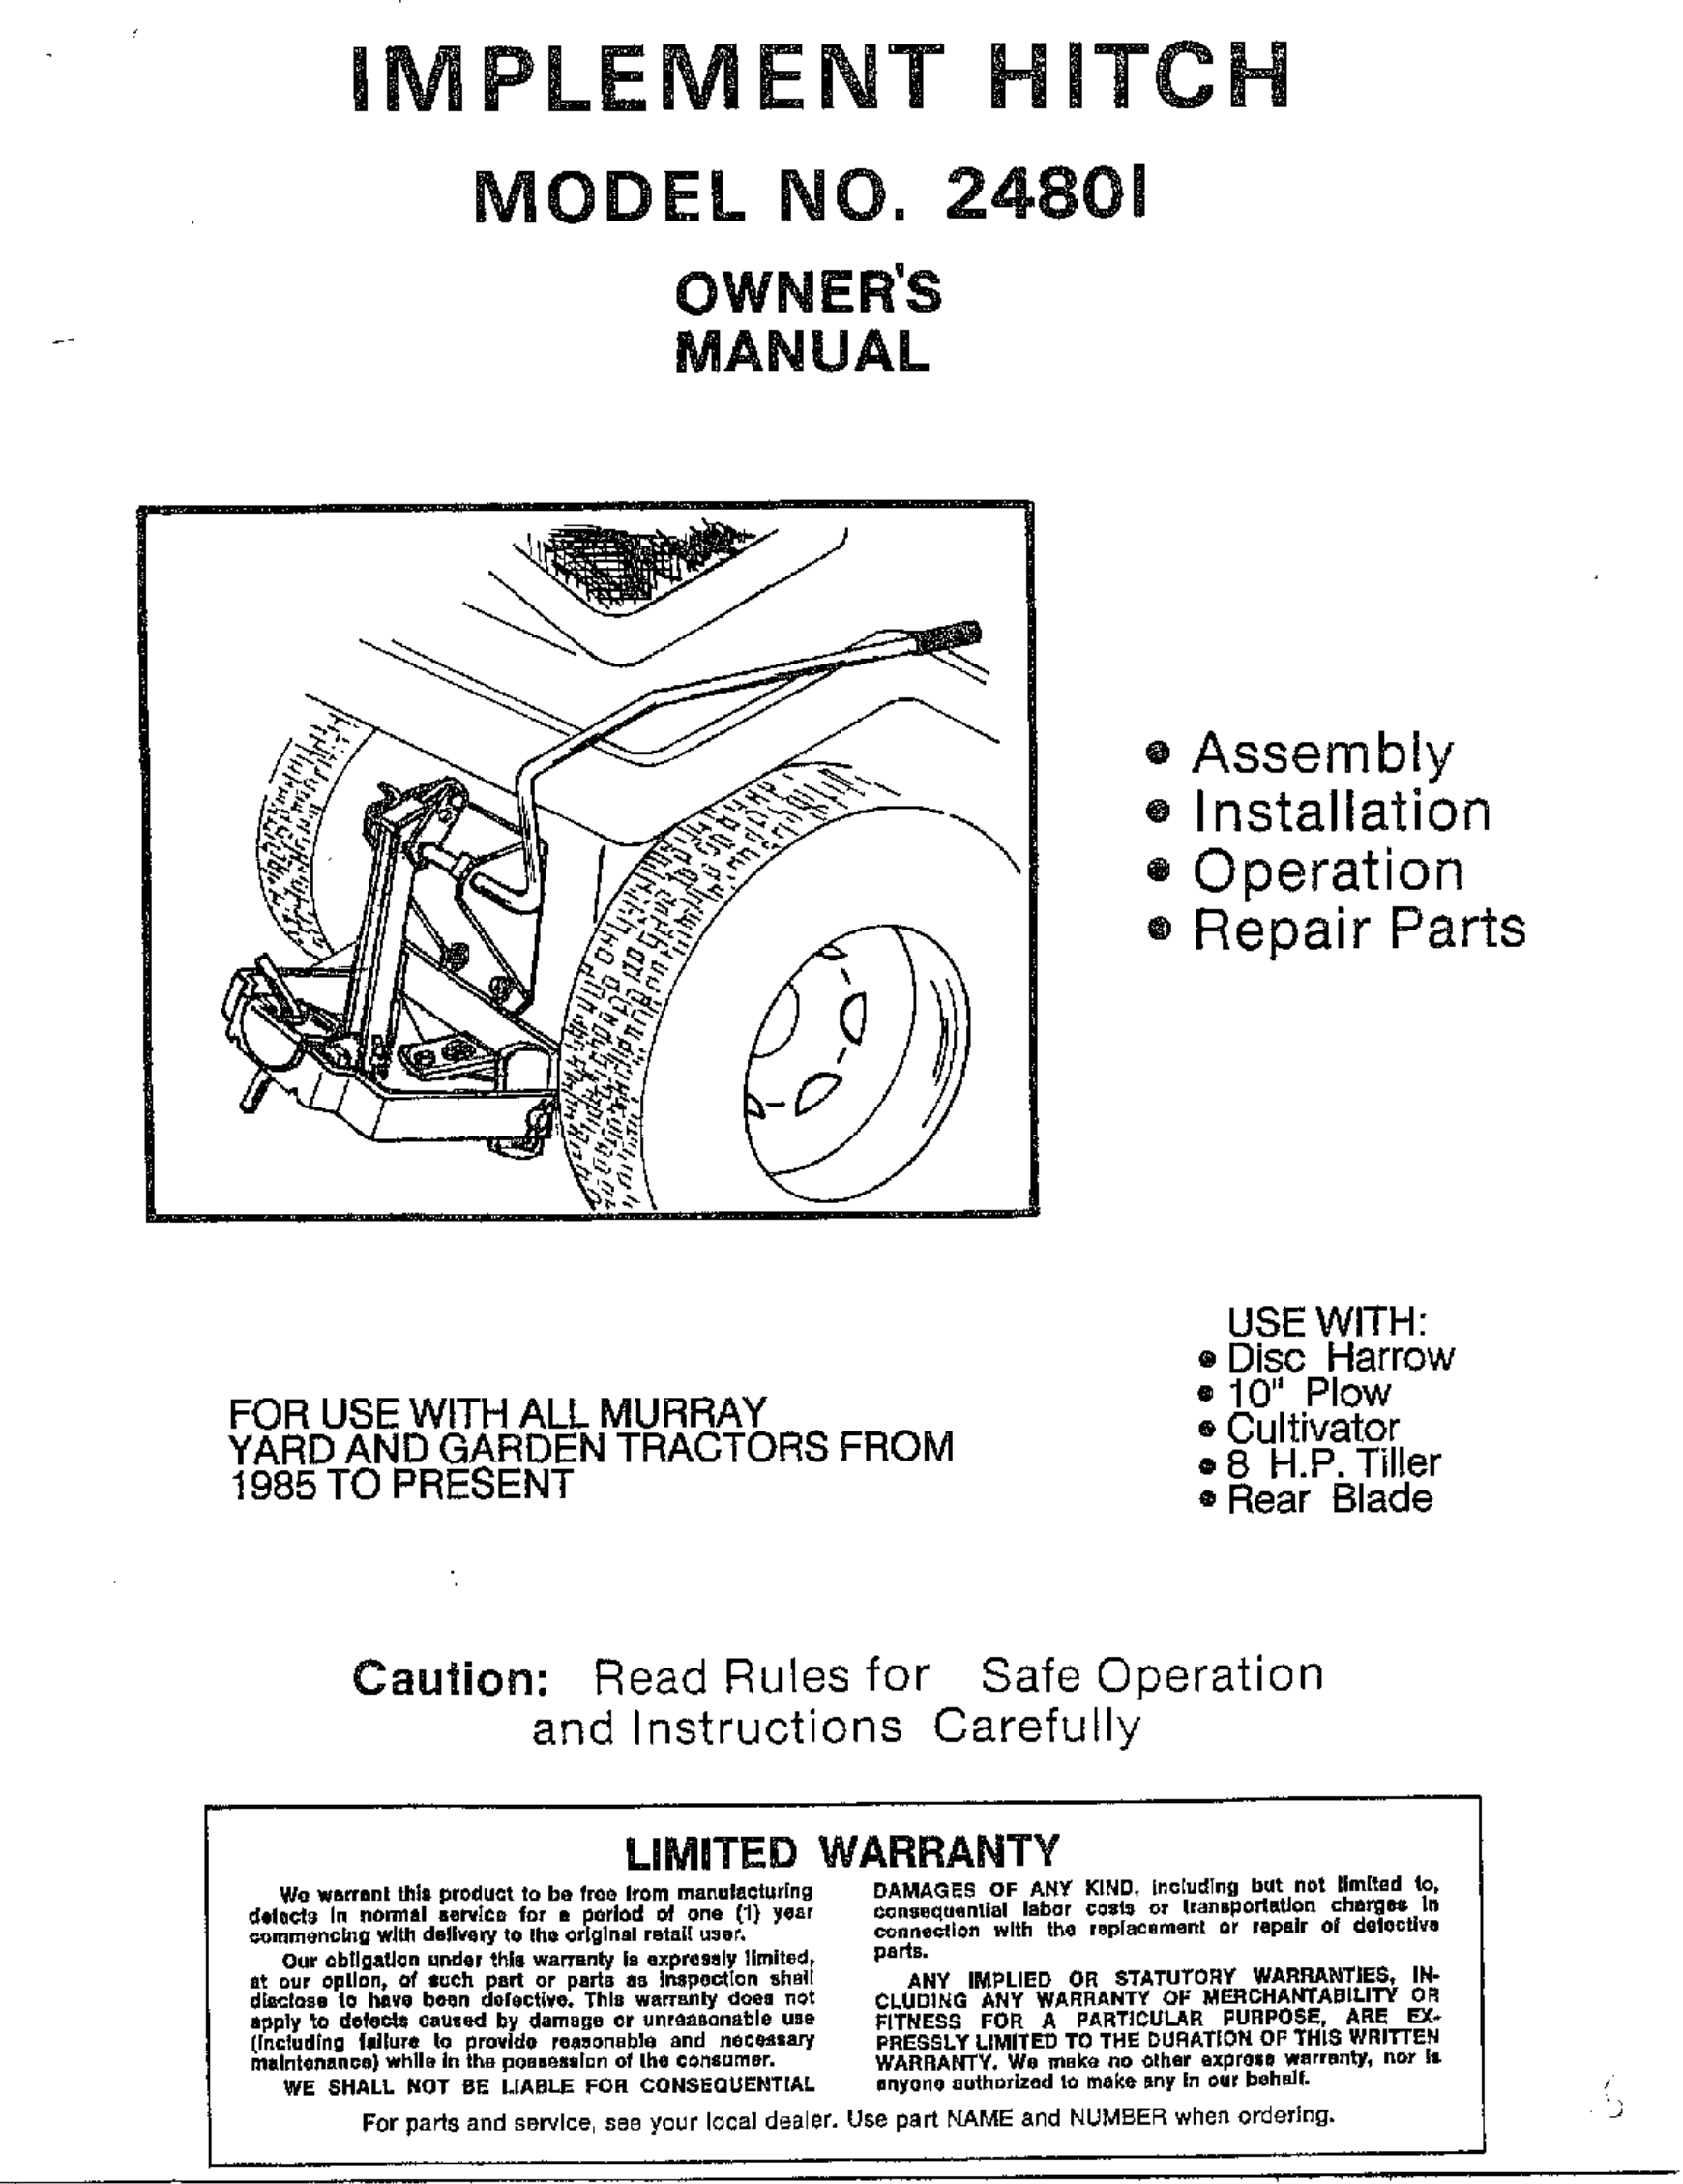 murray 24801 user manual implement hitch manuals and guides wl000508 rh usermanual wiki murray tractor user manual murray snow blower user manual